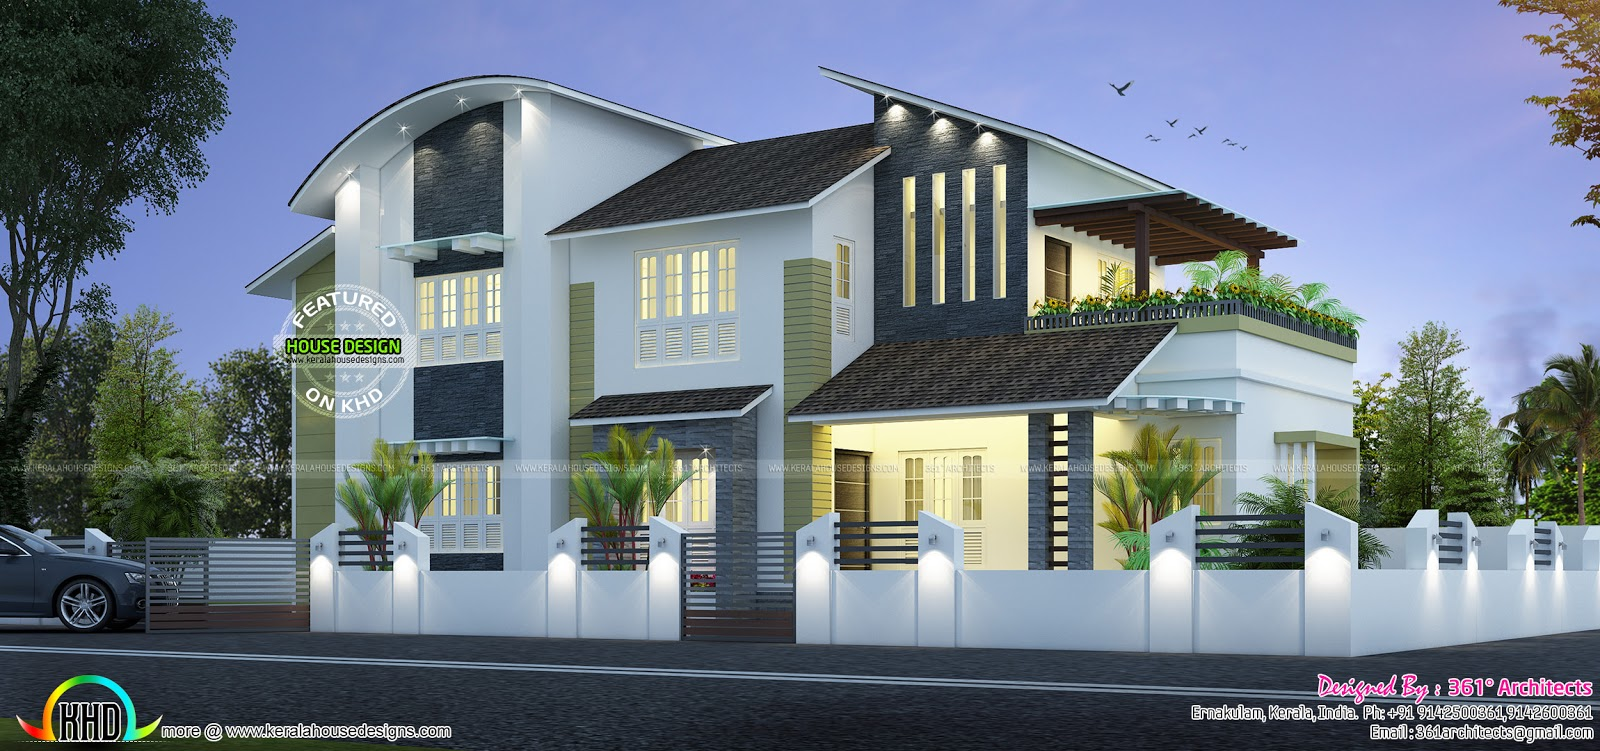 New modern house 35 lakhs kerala home design and floor plans for New modern house design